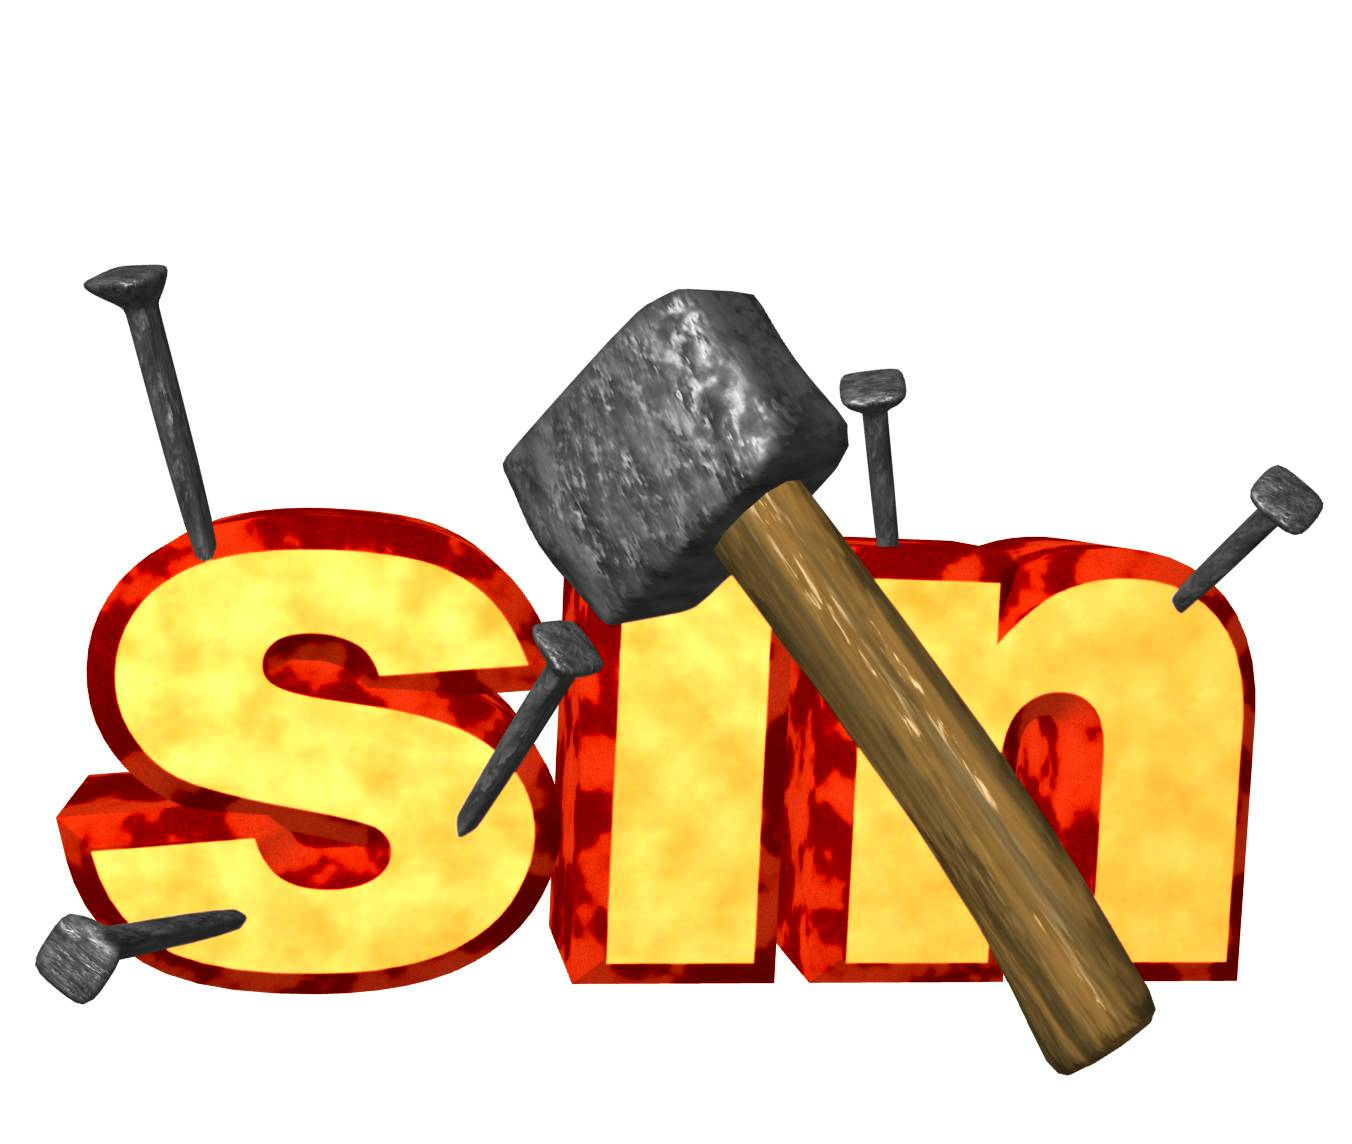 Clipart Of A Sinful People.